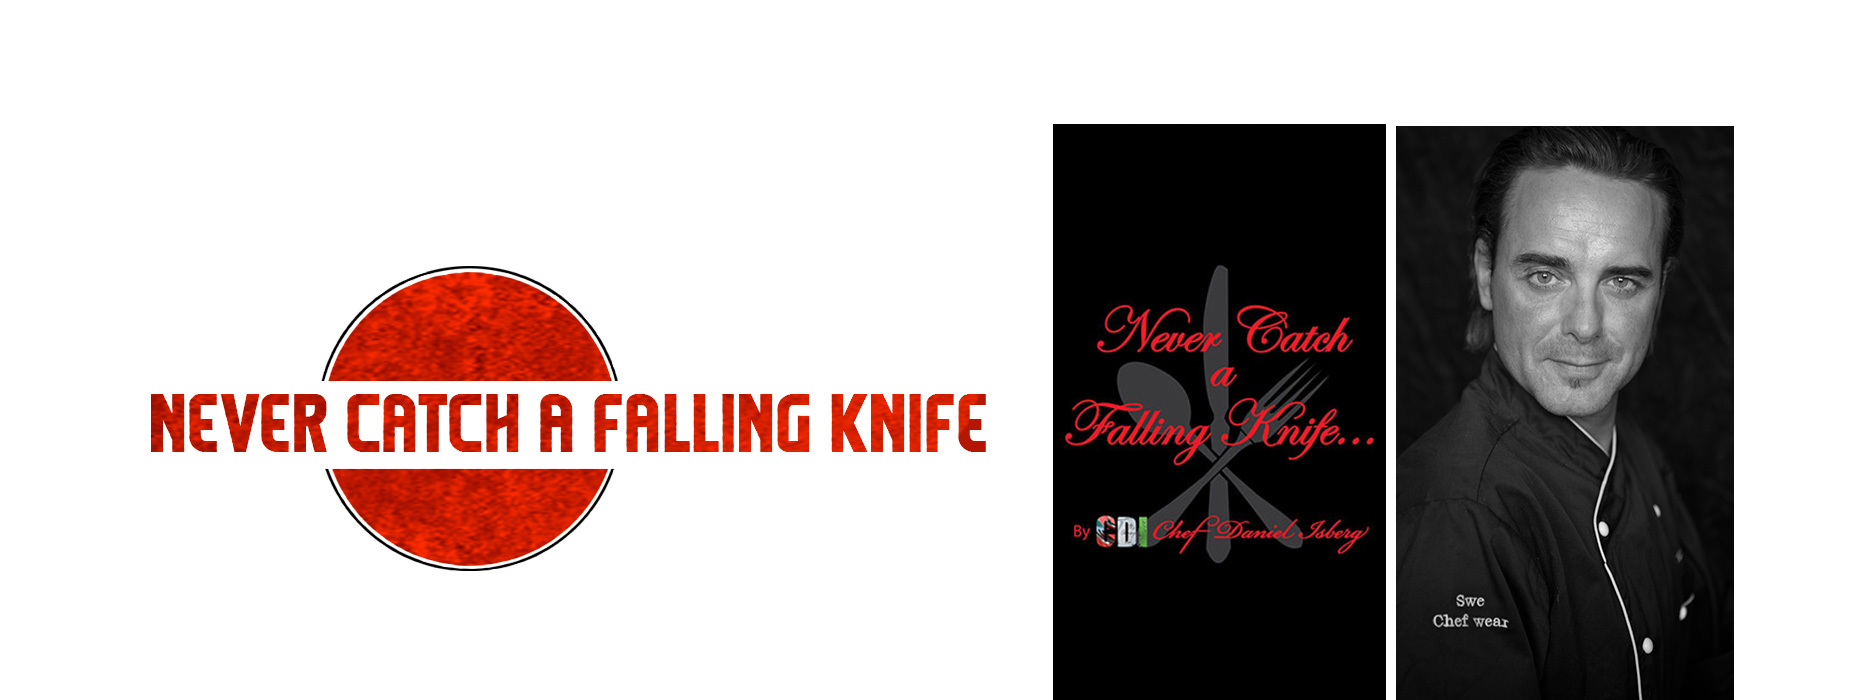 Chef Daniel's book %22Never Catch a Falling Knife%22